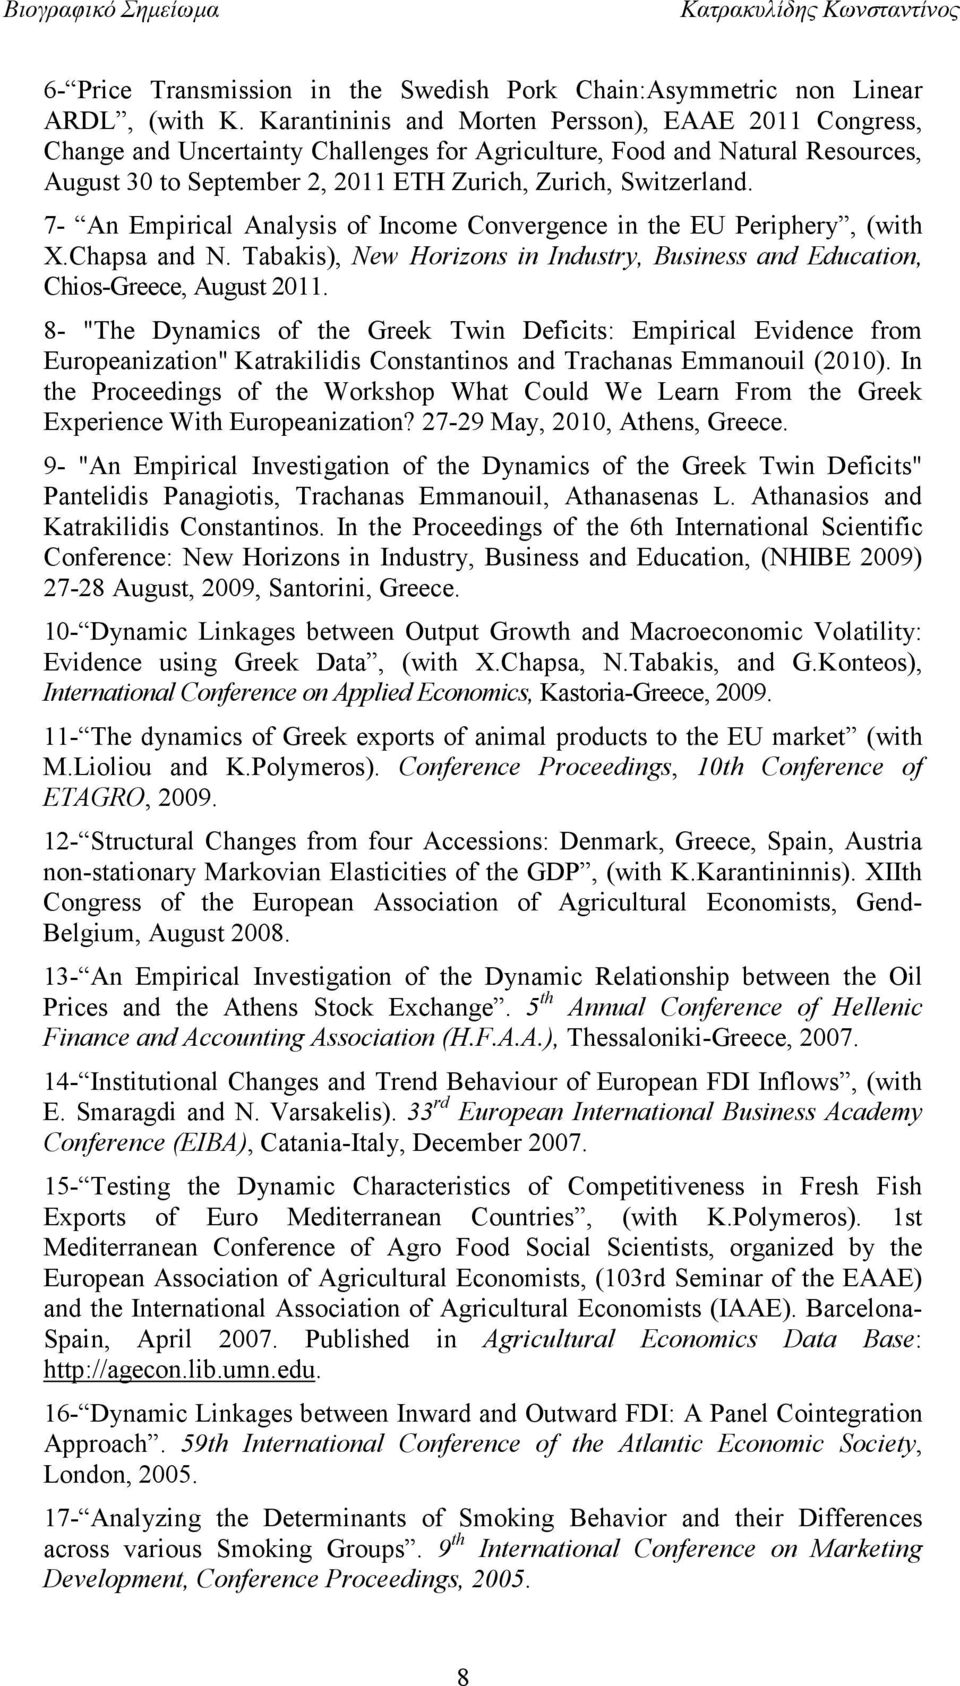 7- An Empirical Analysis of Income Convergence in the EU Periphery, (with X.Chapsa and N. Tabakis), New Horizons in Industry, Business and Education, Chios-Greece, August 2011.